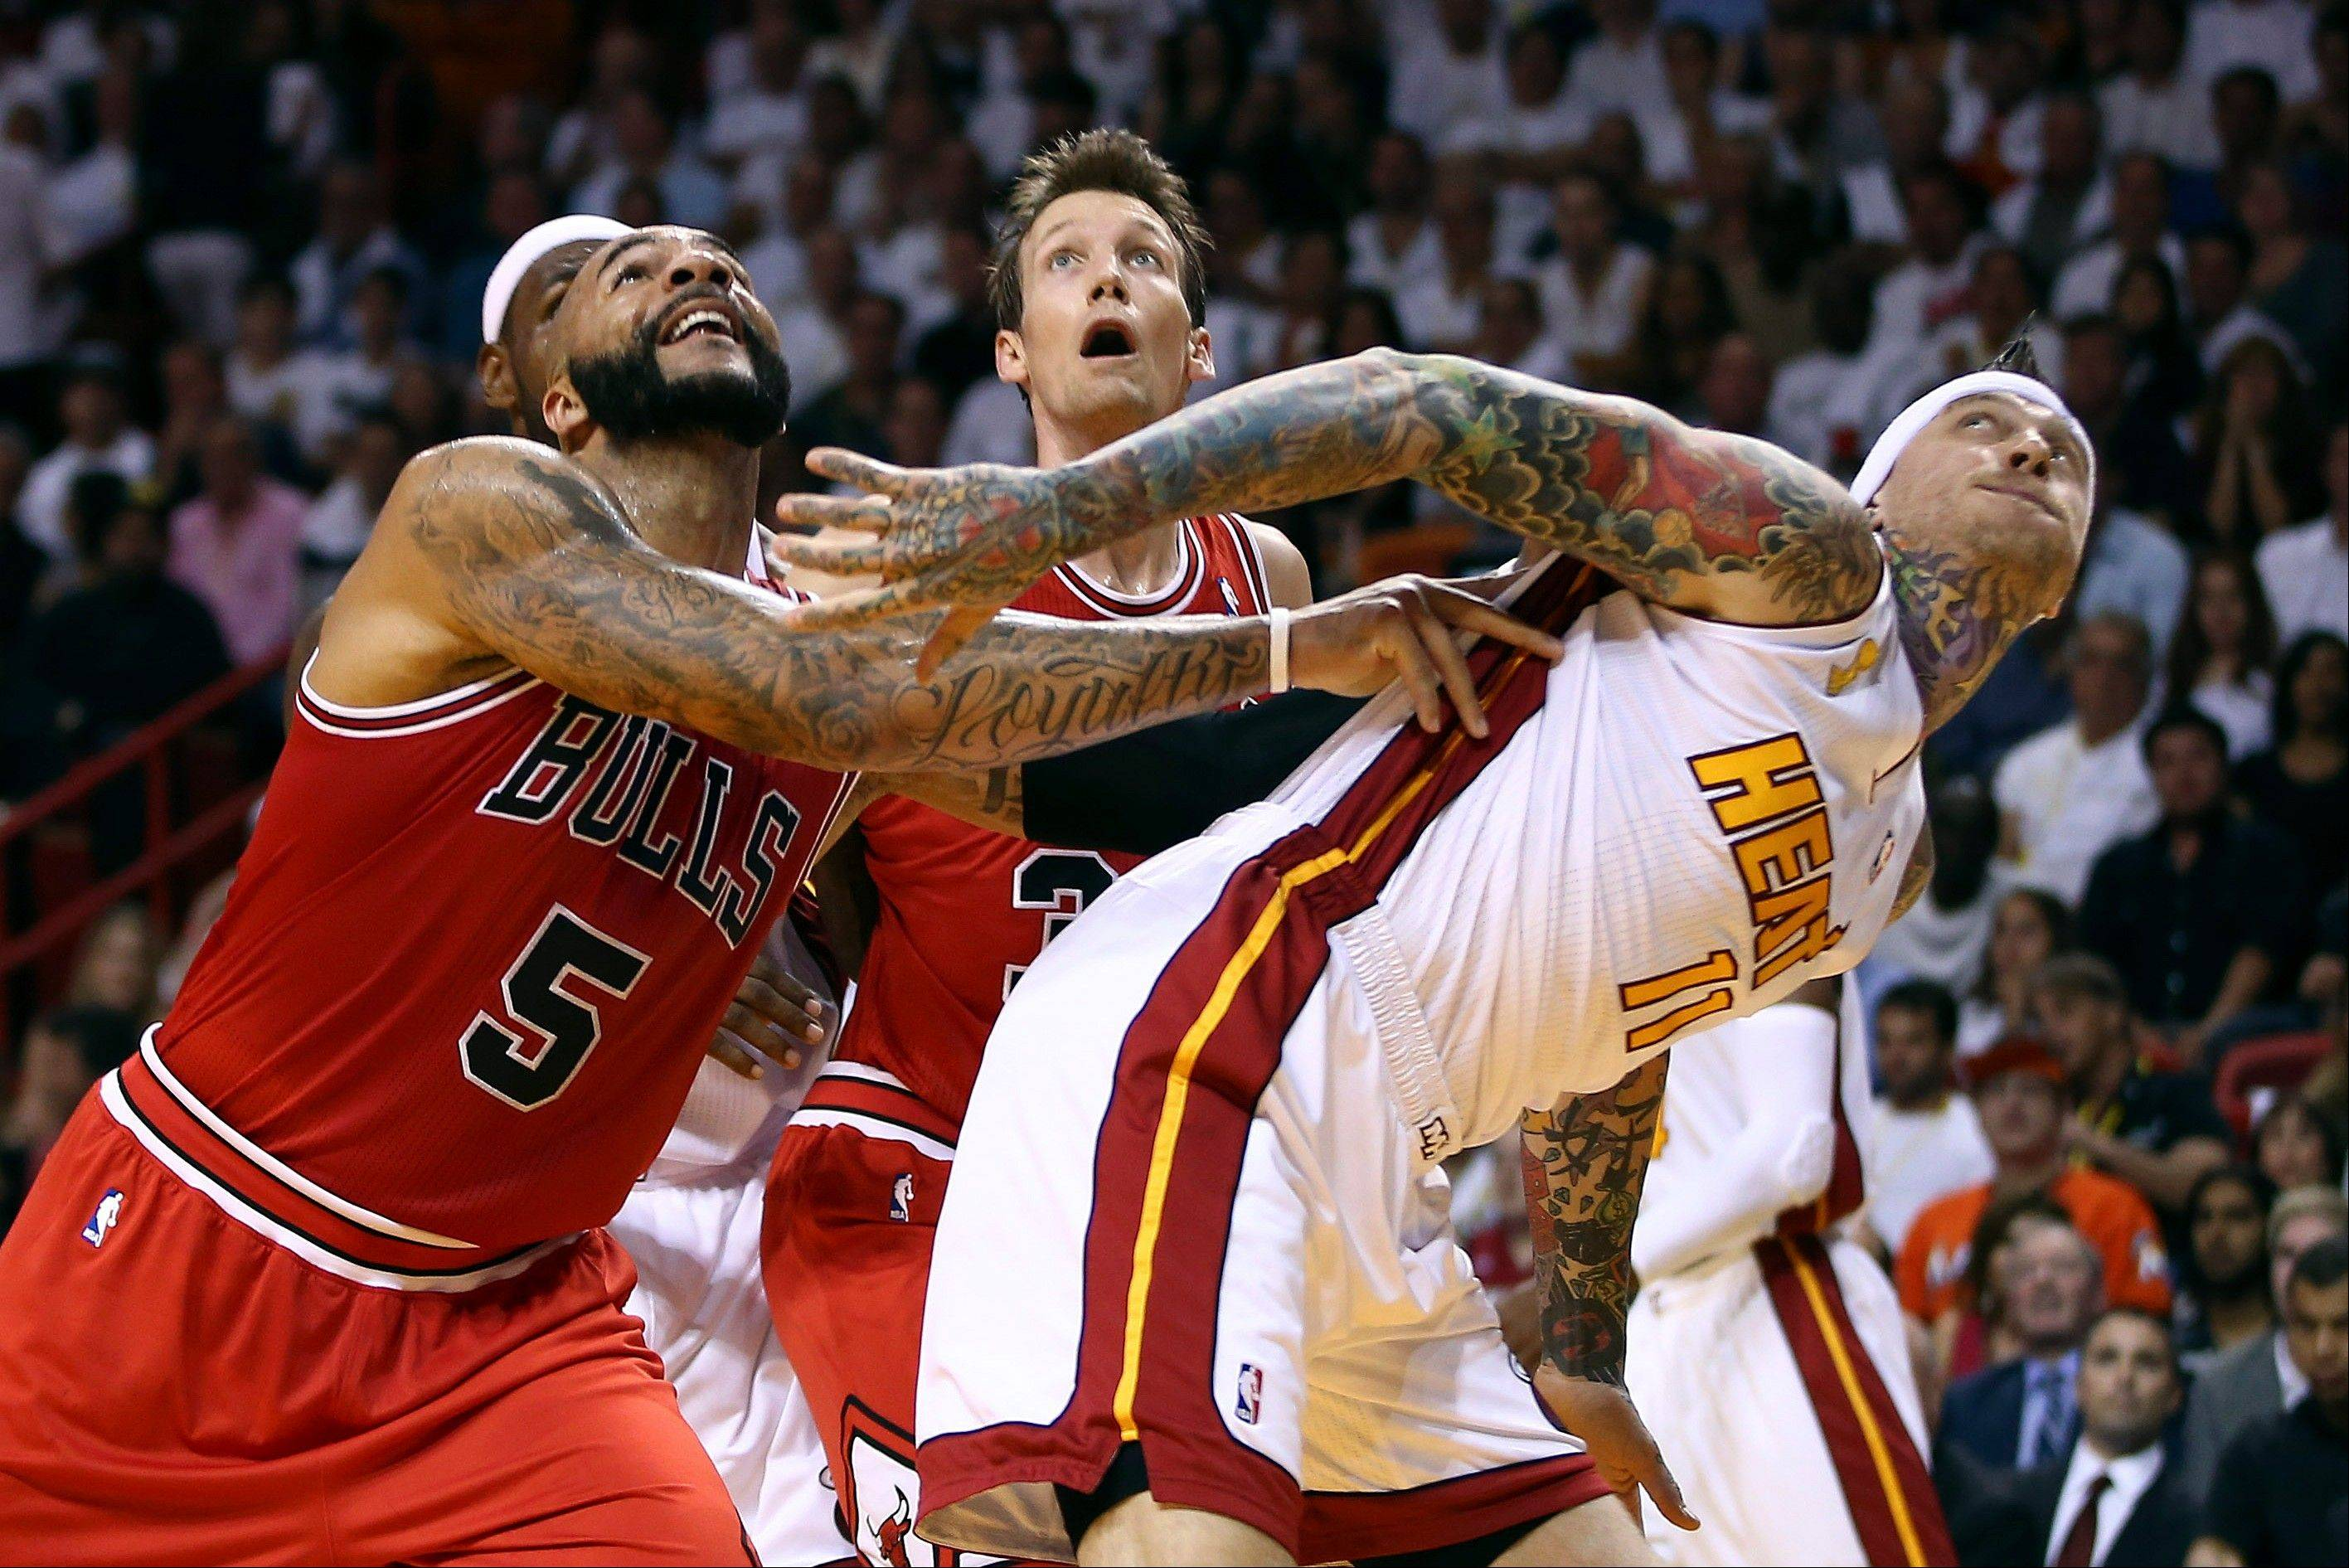 Chicago Bulls Carlos Boozer (5) and Mike Dunleavy battle for a rebound with the Miami Heat�s Chris Andersen (11) during the first half of an NBA basketball game in Miami, Tuesday, Oct. 29, 2013.